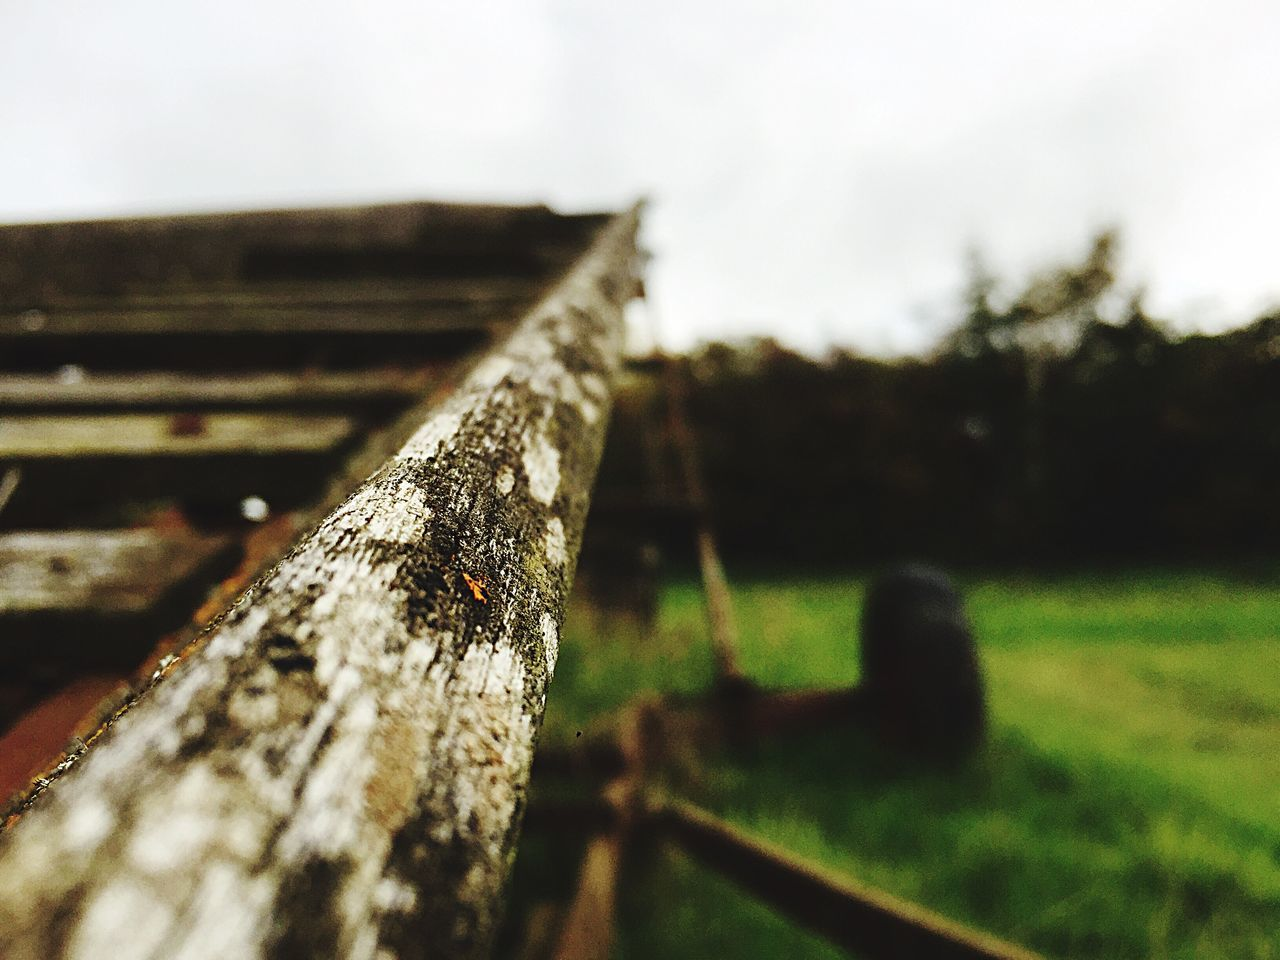 wood - material, no people, close-up, outdoors, day, focus on foreground, sky, tree, nature, grass